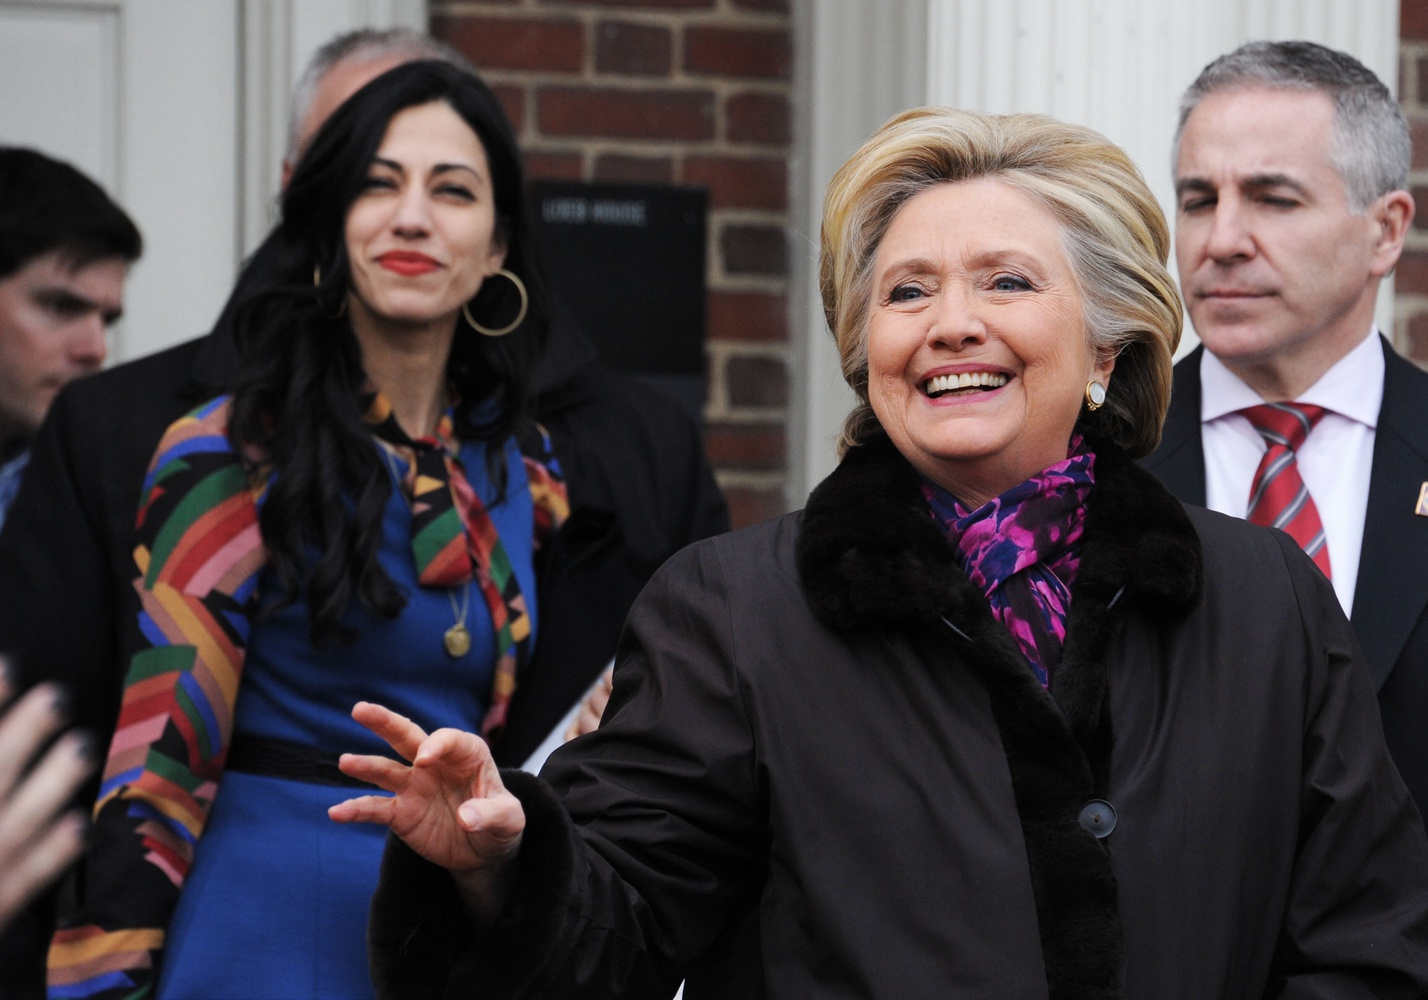 Hillary Clinton waves at a crowd of students gathered outside Loeb House on Friday afternoon. The former Secretary of State visited Harvard's campus to be interviewed as part of a joint Kennedy School, Law School, and Business School project.